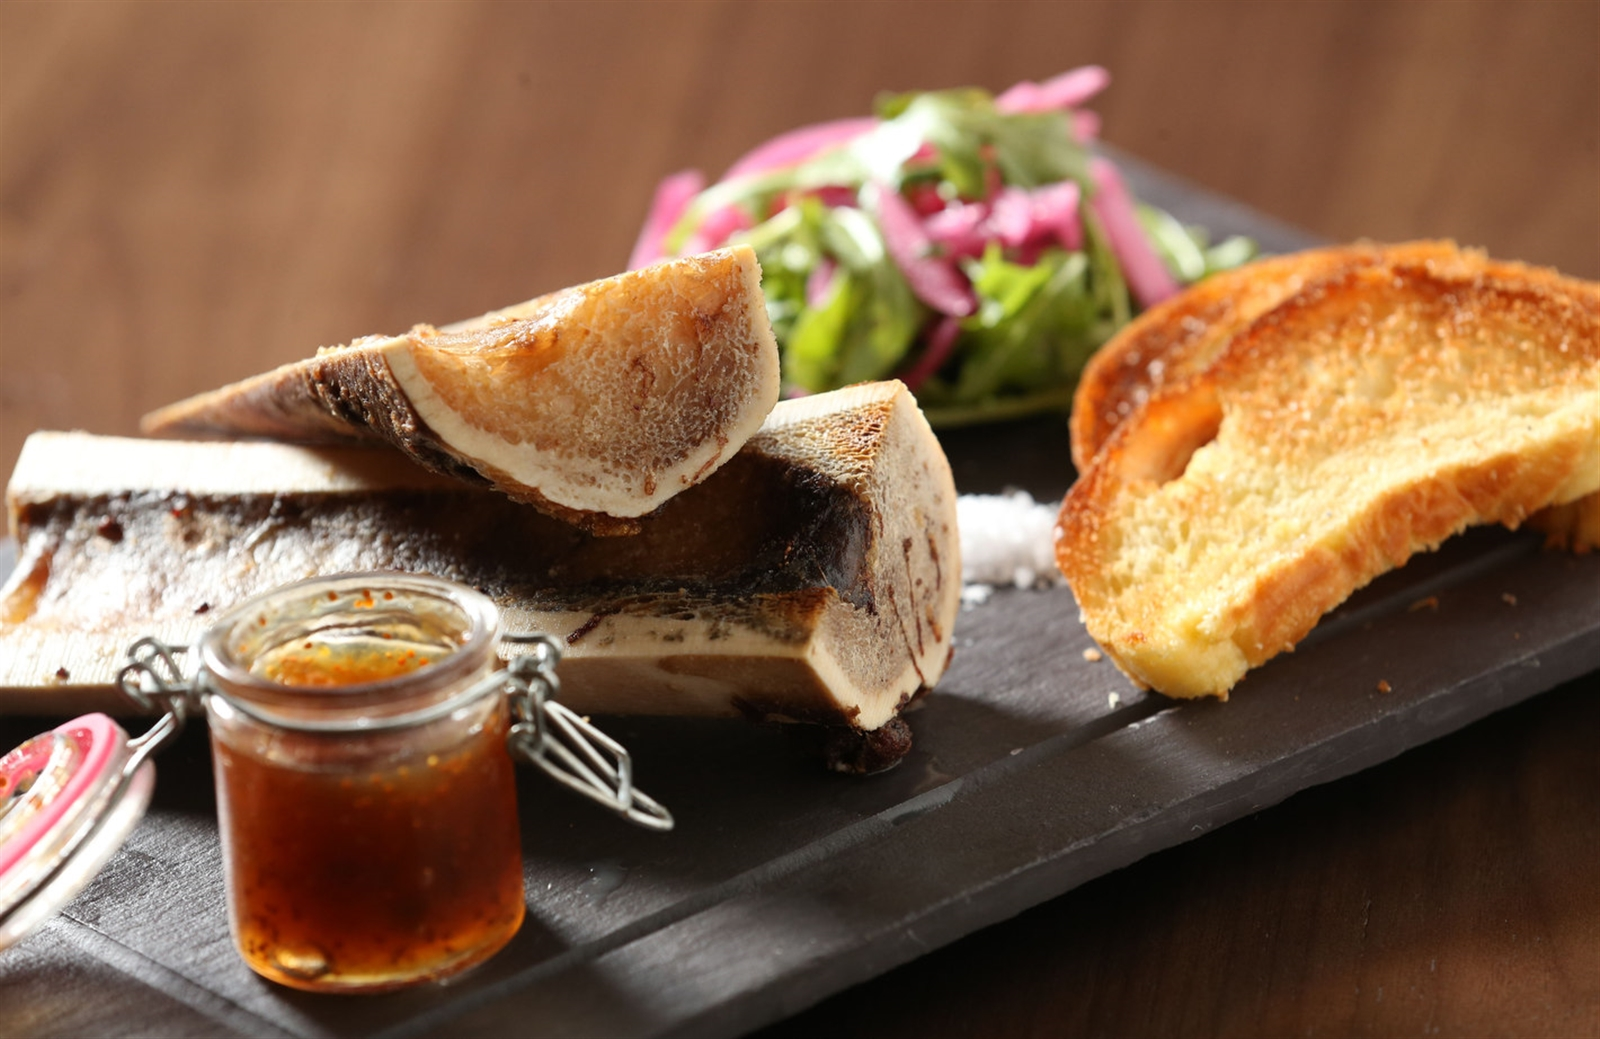 Their roasted bone marrow comes with pickled shallot, baby arugula salad, fig preserve and truffle crostini.